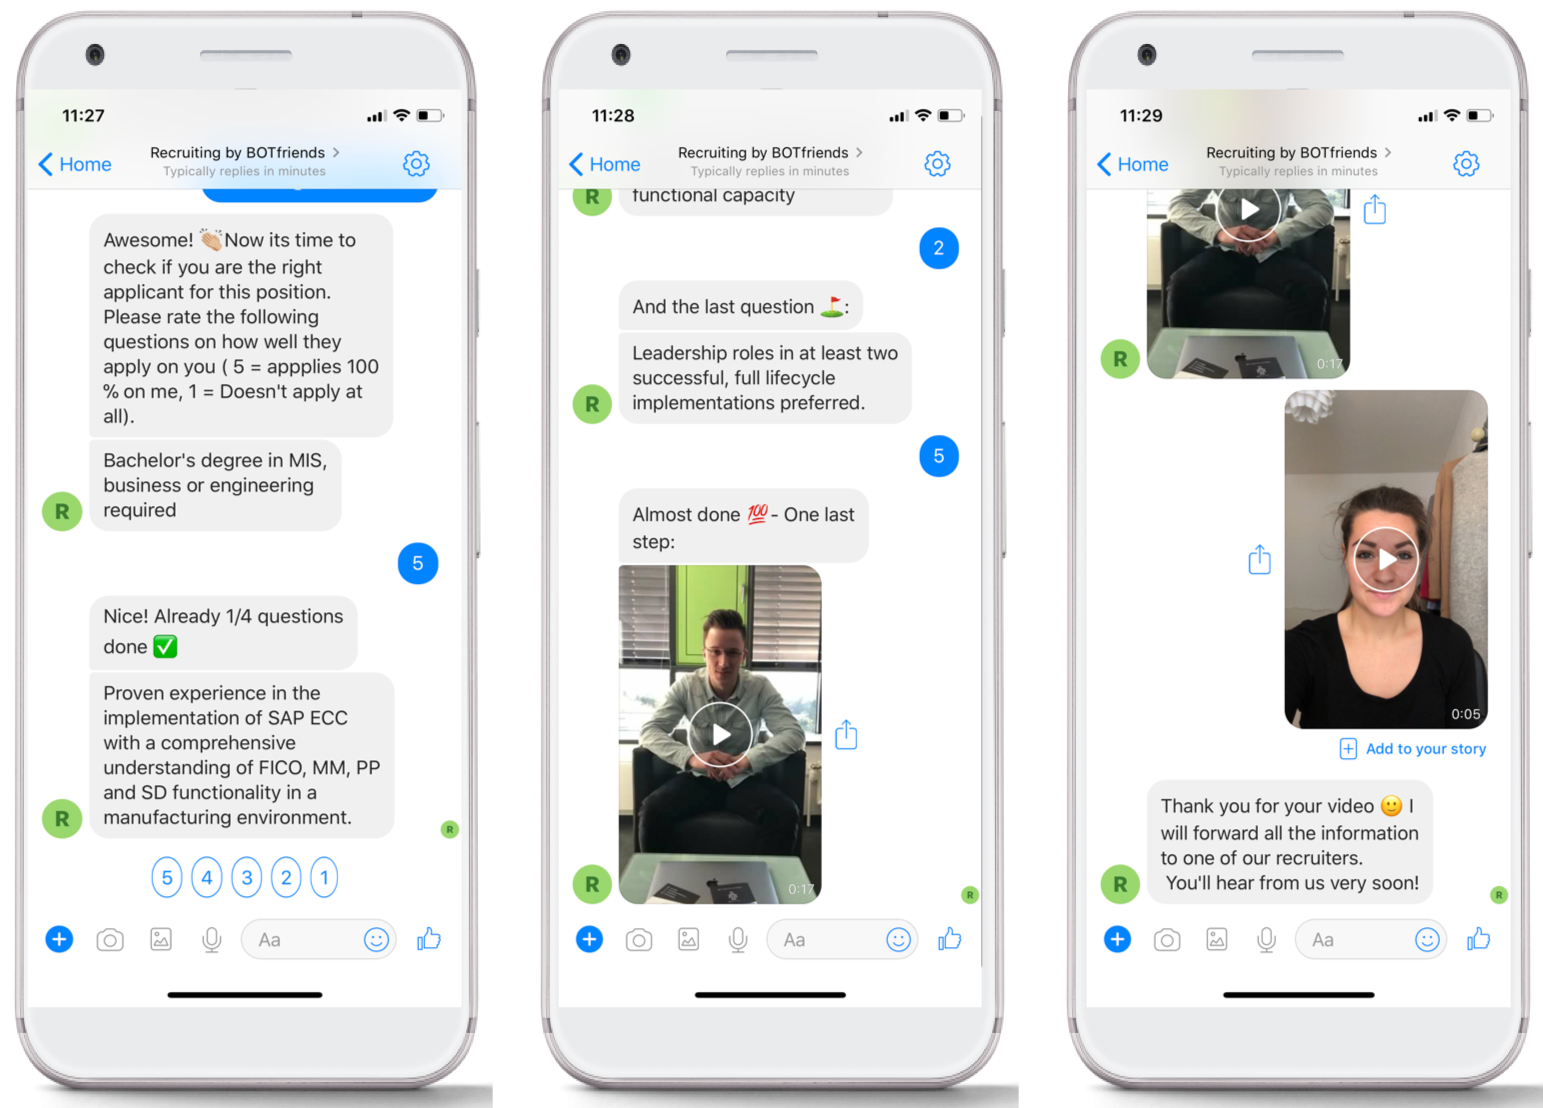 A chatbot asking screening questions and ranking the applicant